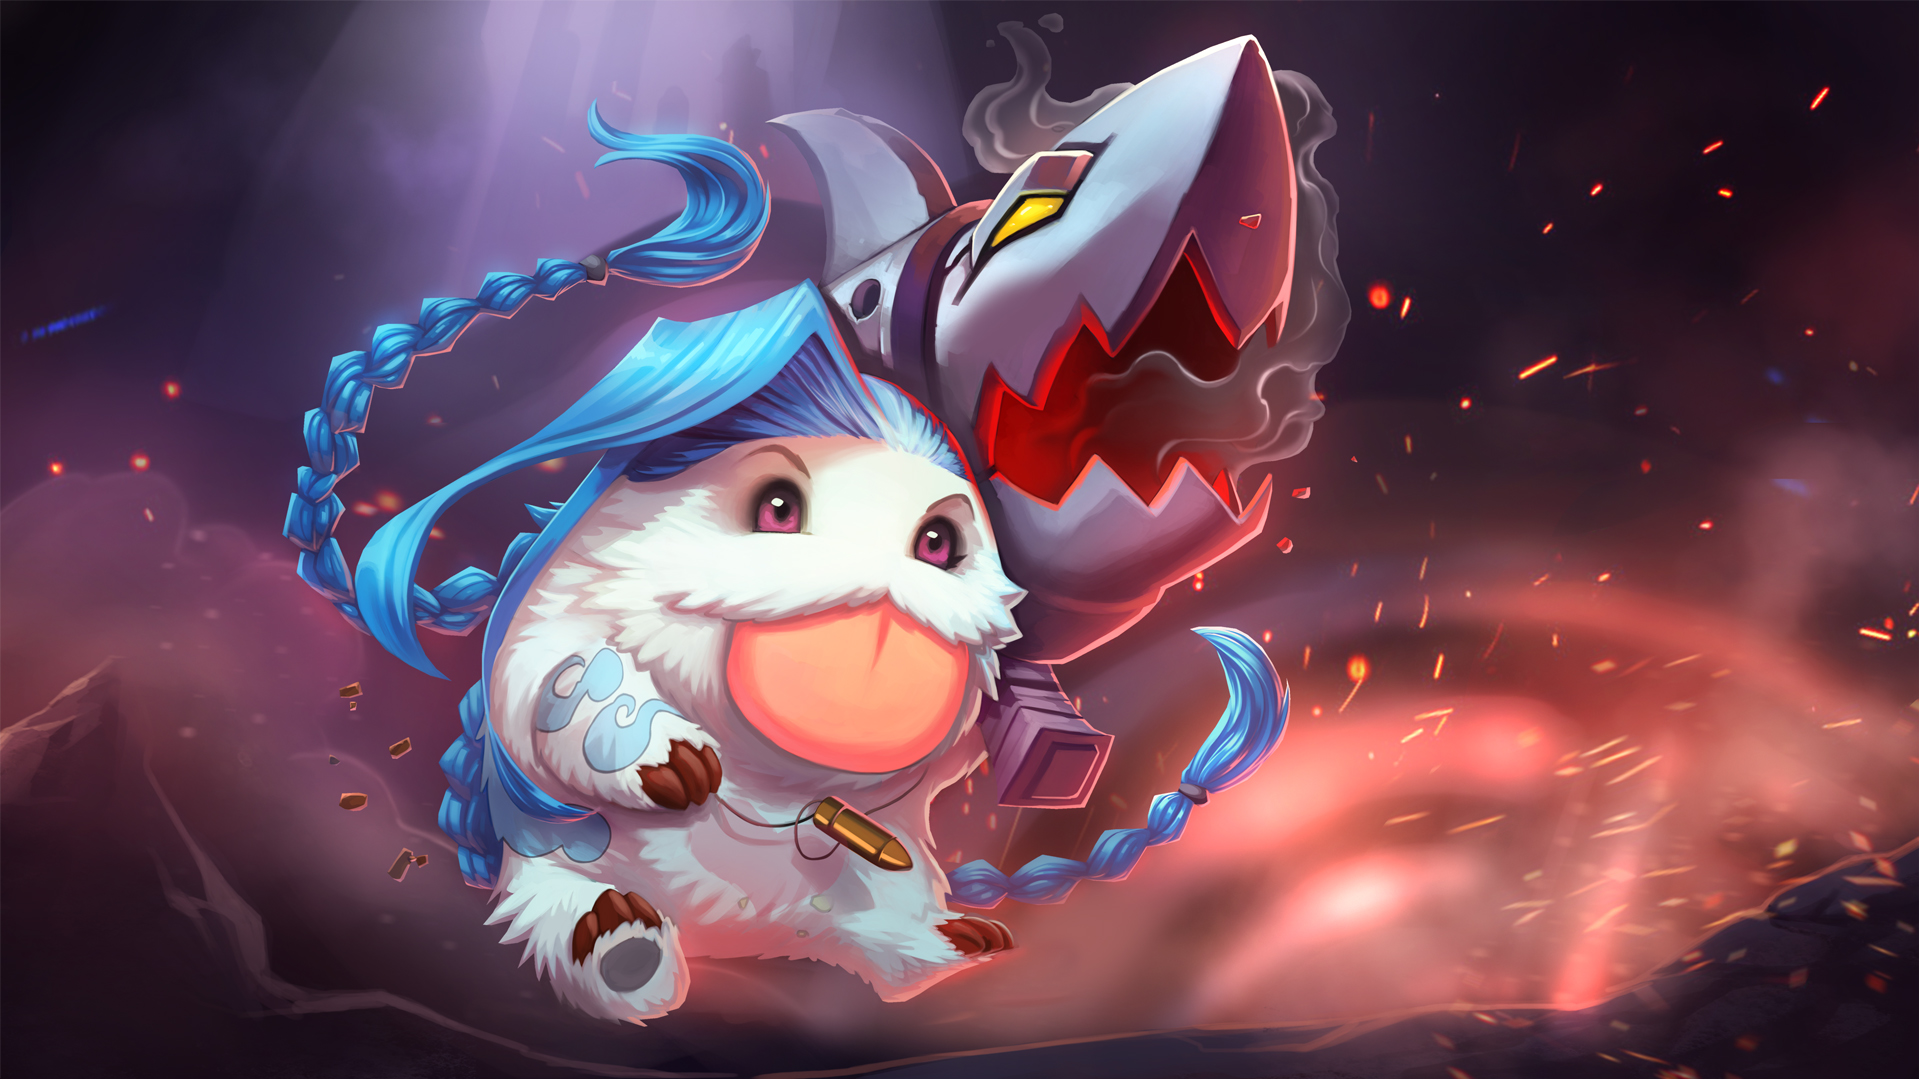 image - jinx poro | league of legends wiki | fandom poweredwikia